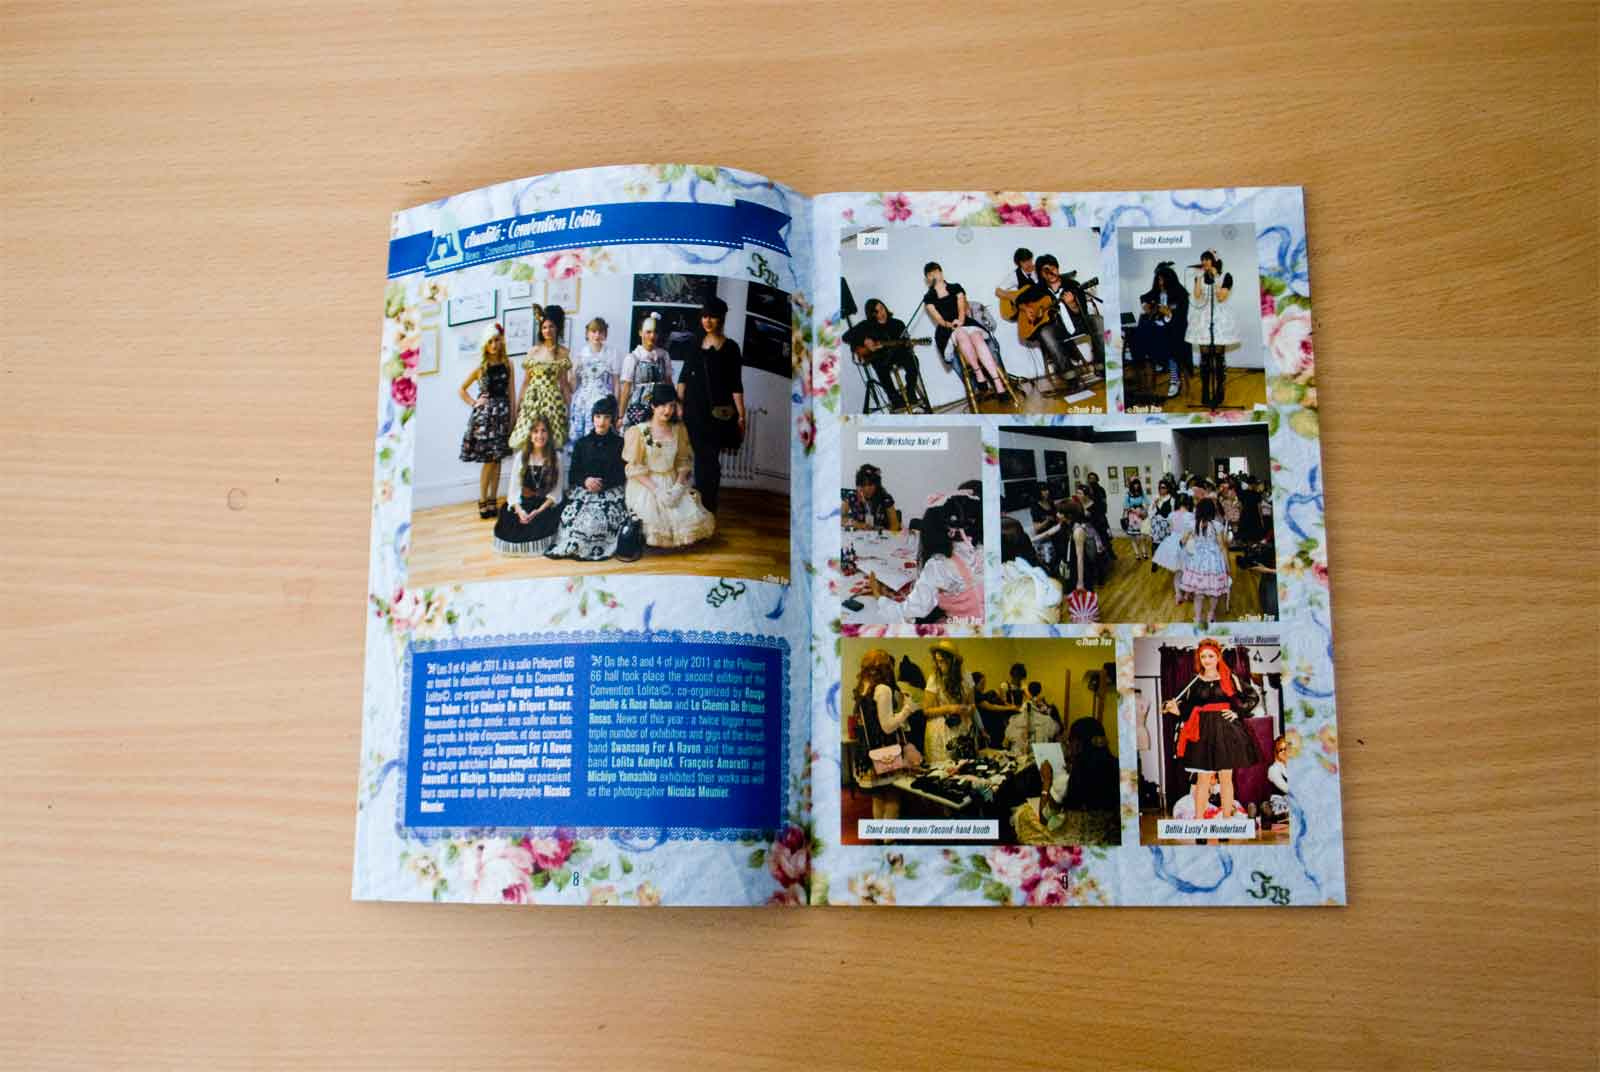 Slide 3/6 of my work on the lolita fashion publication